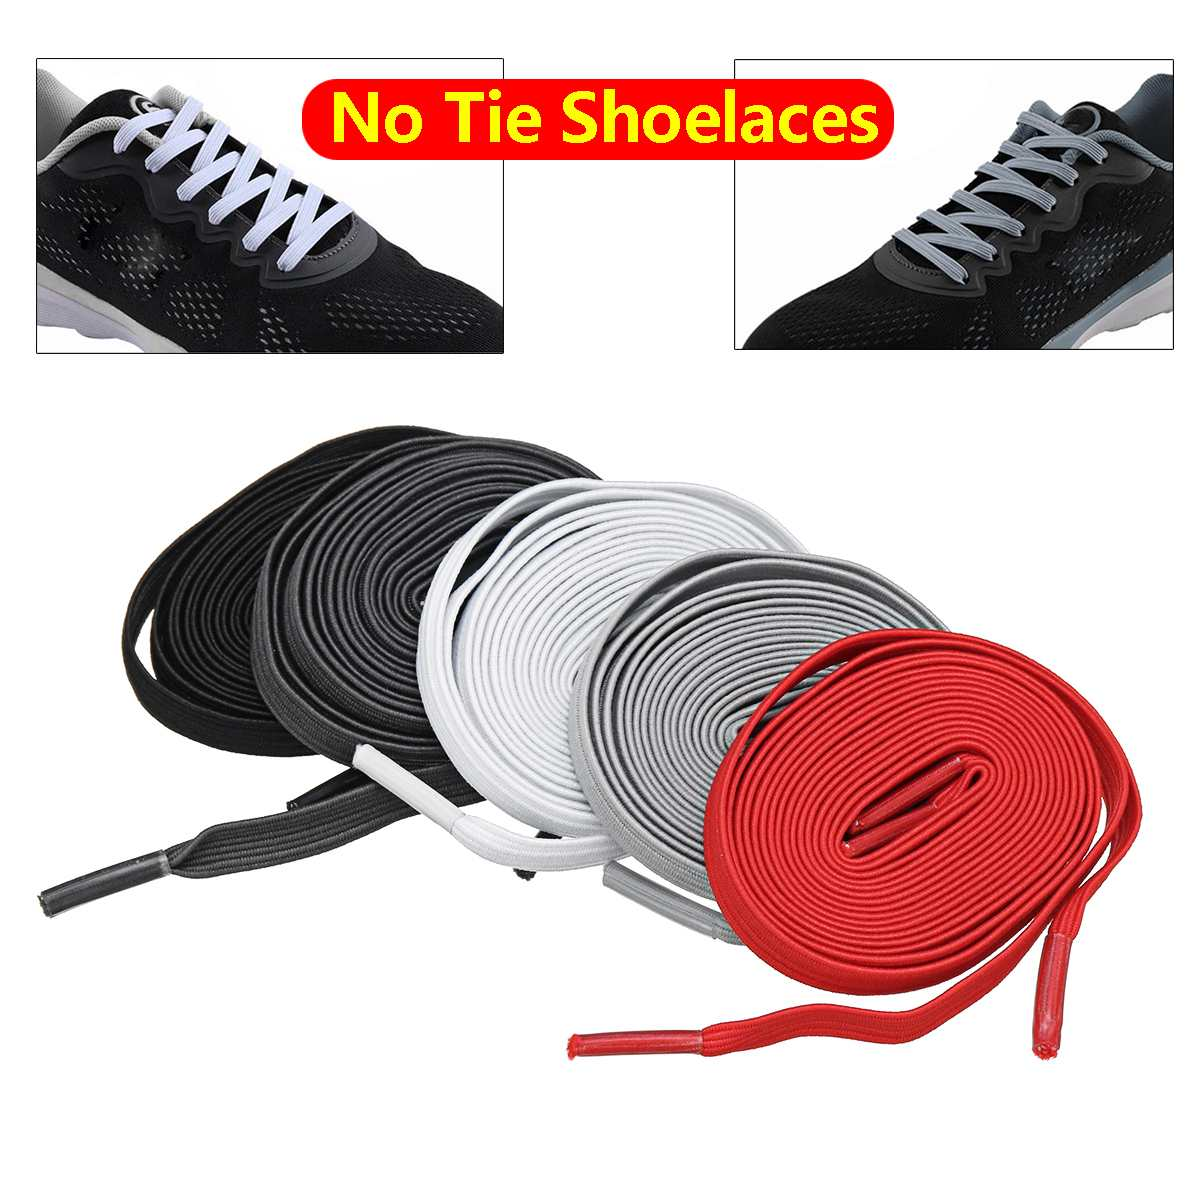 100cm Unisex Adults Kids Elastic Lazy Shoe Laces Sport Sneaker Polyester No Tie Shoelaces Black White Dark Grey Light Grey Red100cm Unisex Adults Kids Elastic Lazy Shoe Laces Sport Sneaker Polyester No Tie Shoelaces Black White Dark Grey Light Grey Red